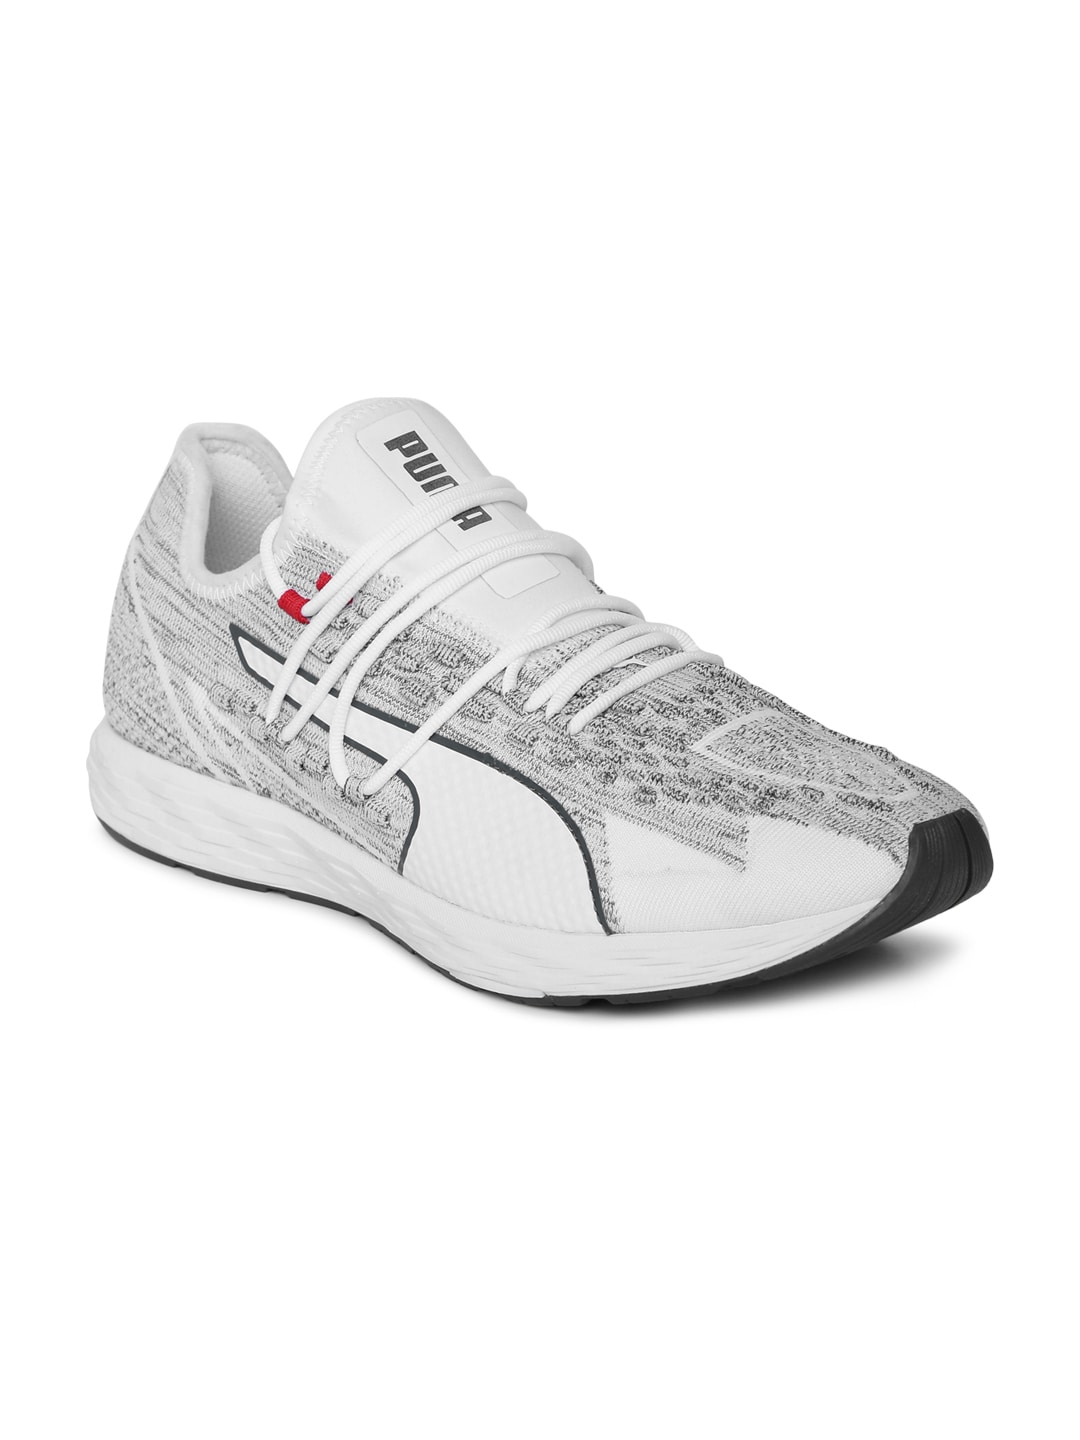 39ca2eaf42f195 Sports Shoes for Women - Buy Women Sports Shoes Online